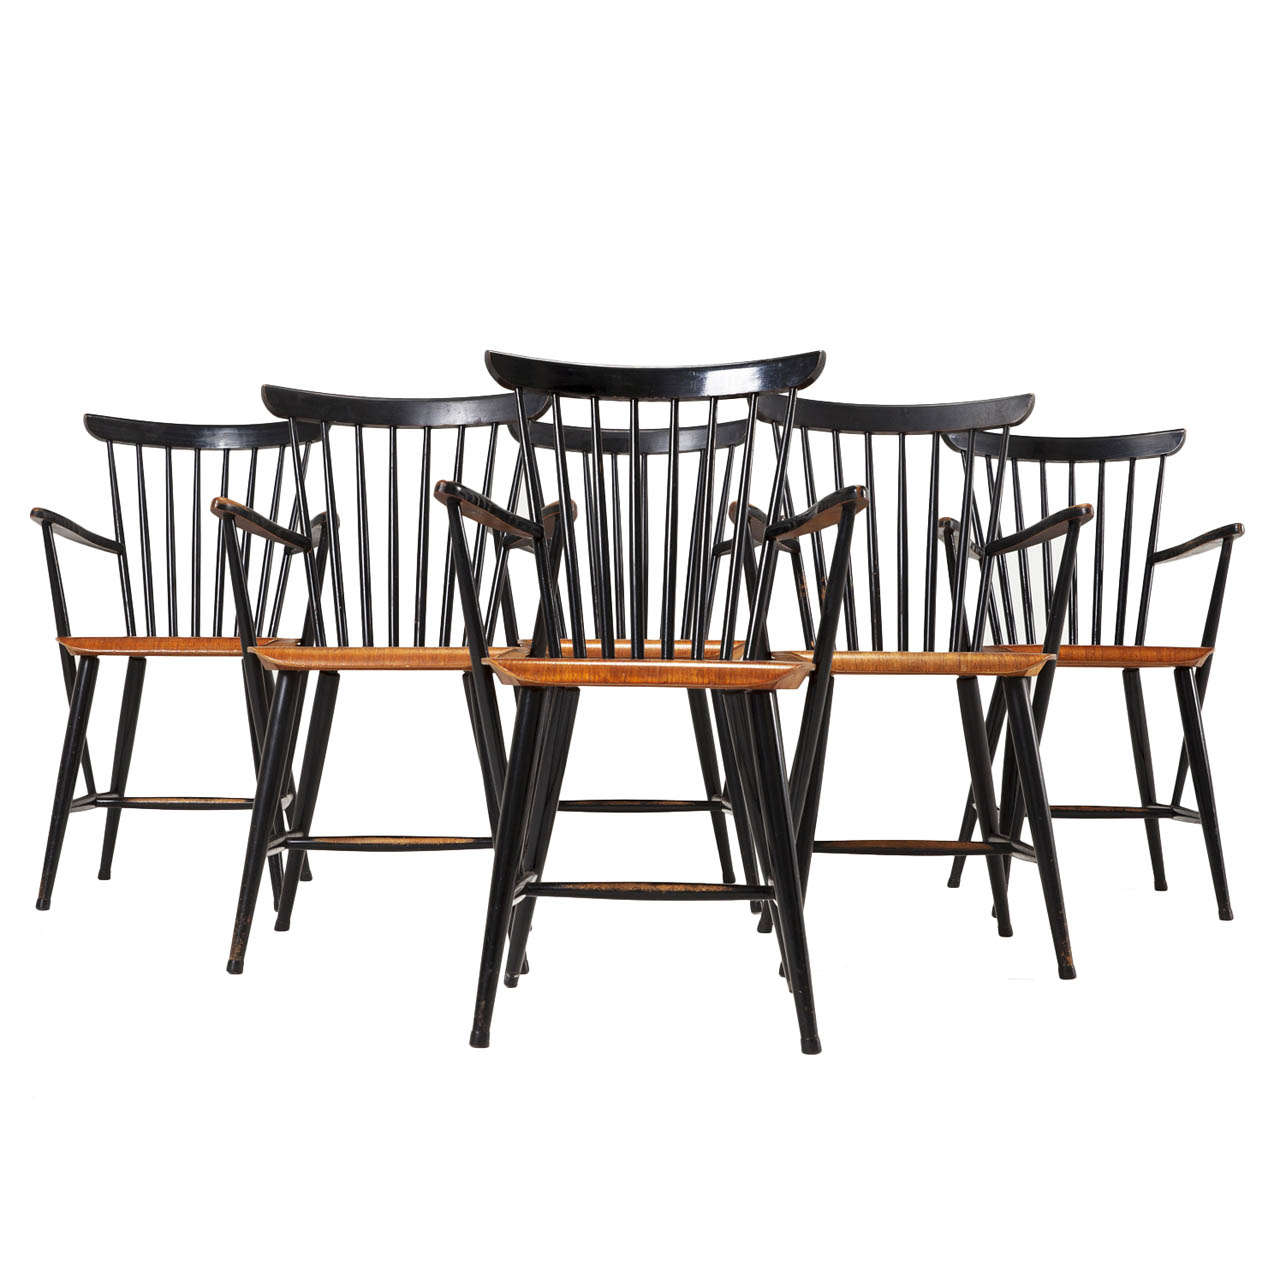 6 Armchairs In Black Coated Beech And Teak At 1stdibs